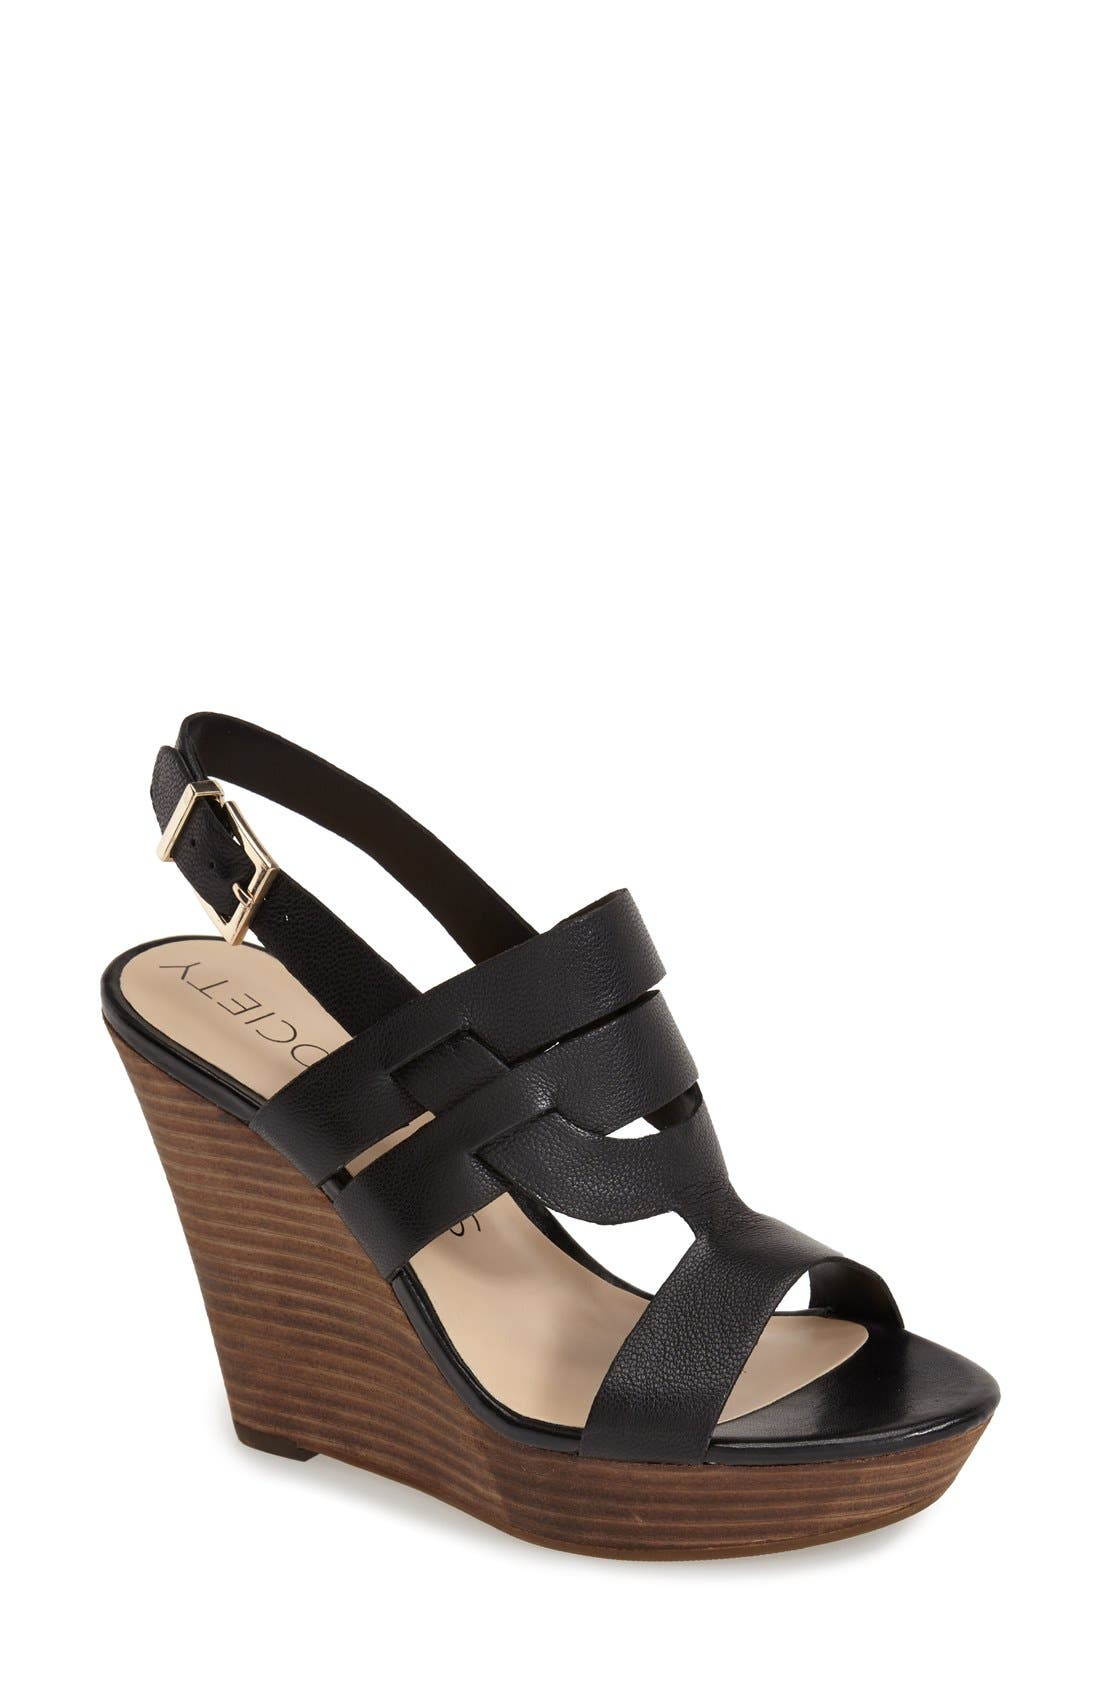 Main Image - Sole Society 'Jenny' Slingback Wedge Sandal (Women)